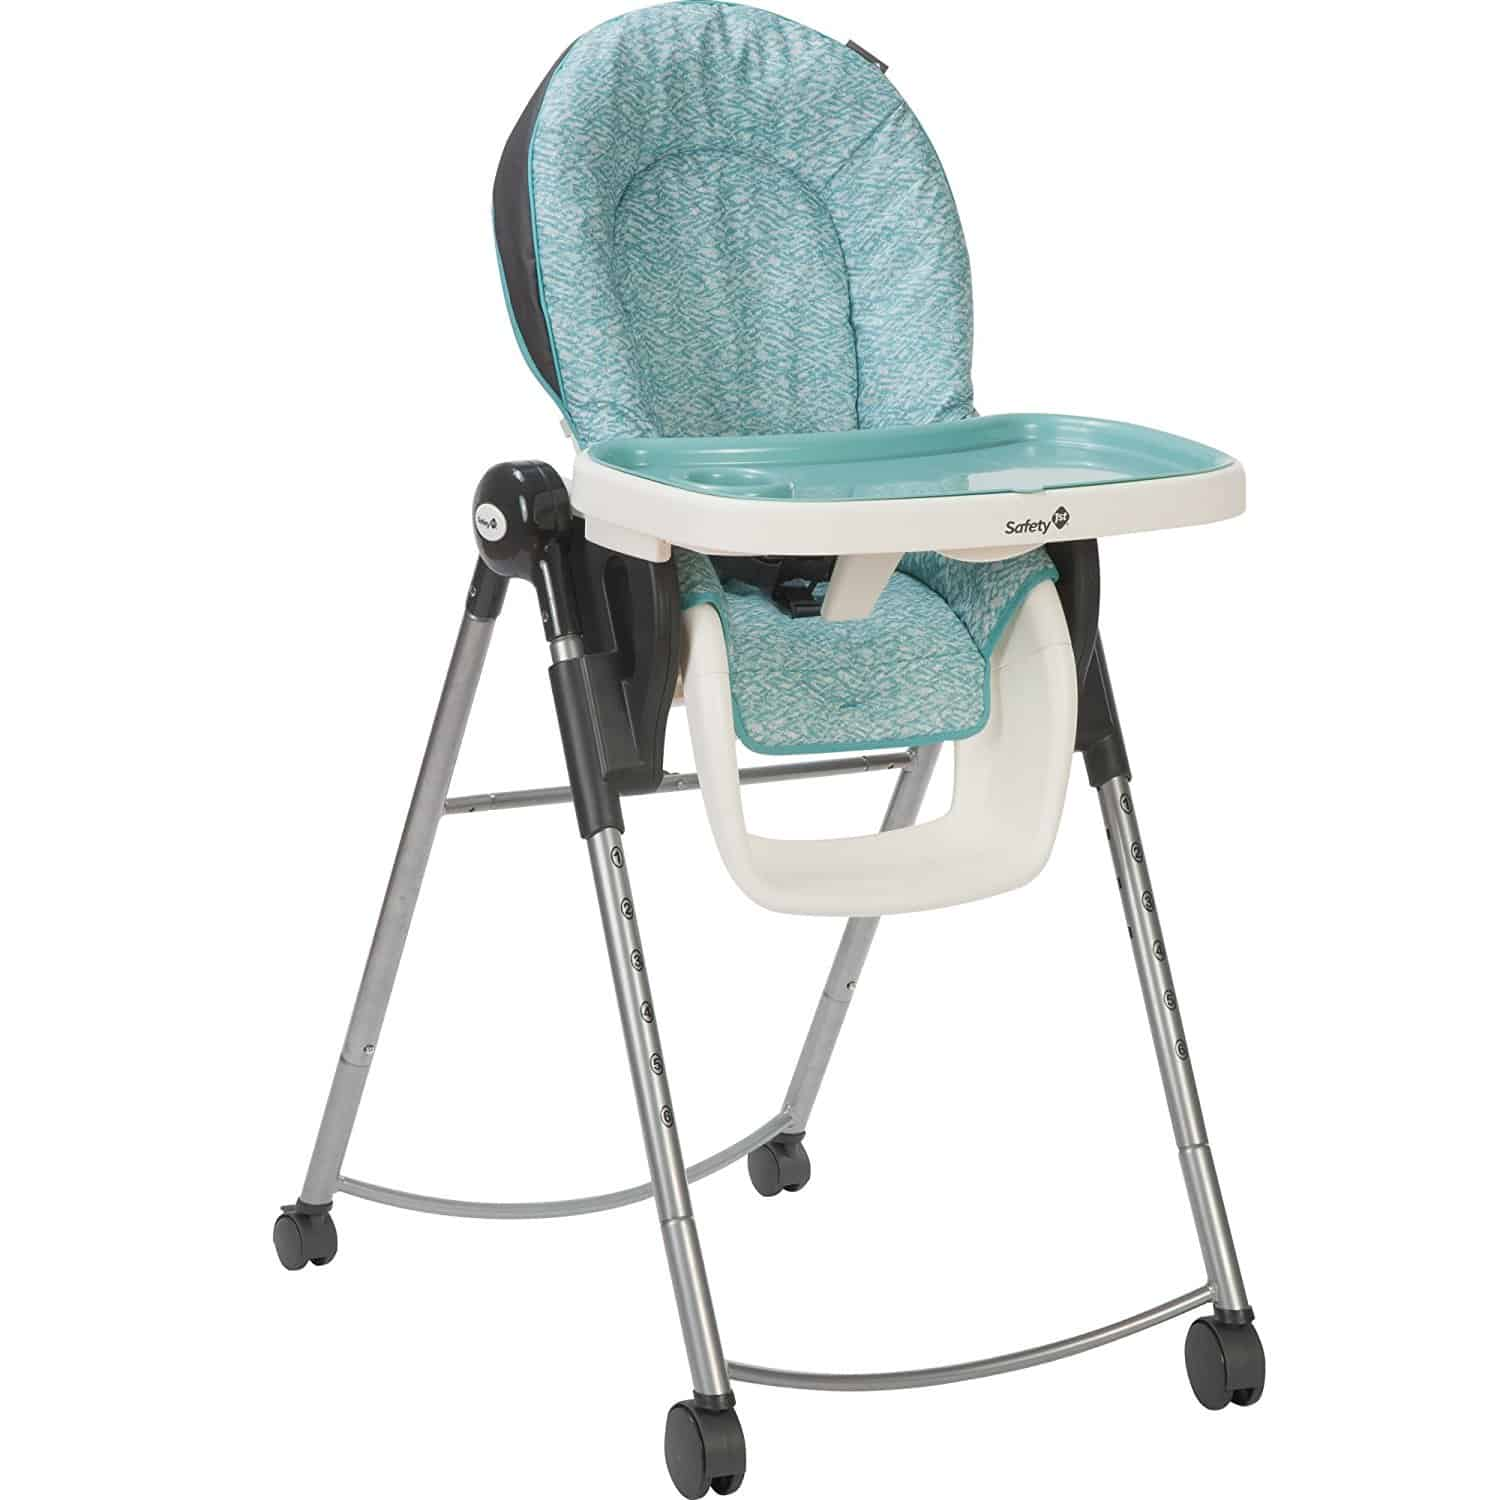 safety 1st high chair recall covers xmas brand review chairs baby